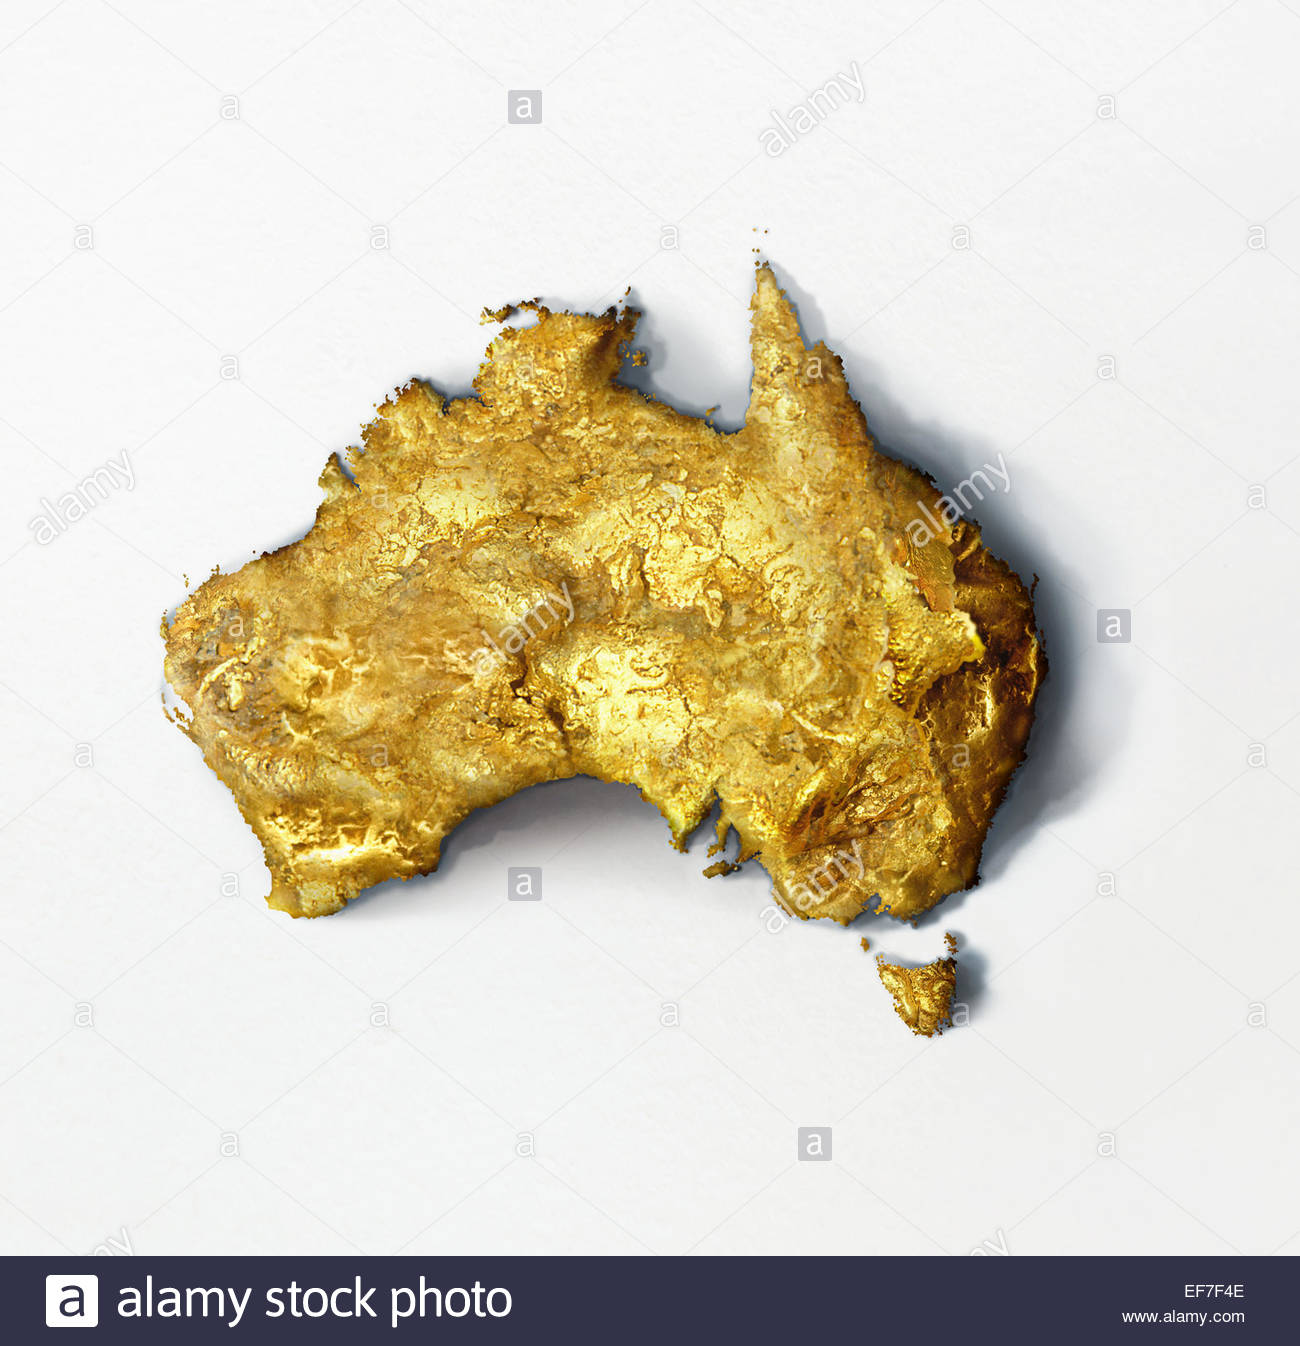 Gold Nugget In Shape Of Australia Stock Photo